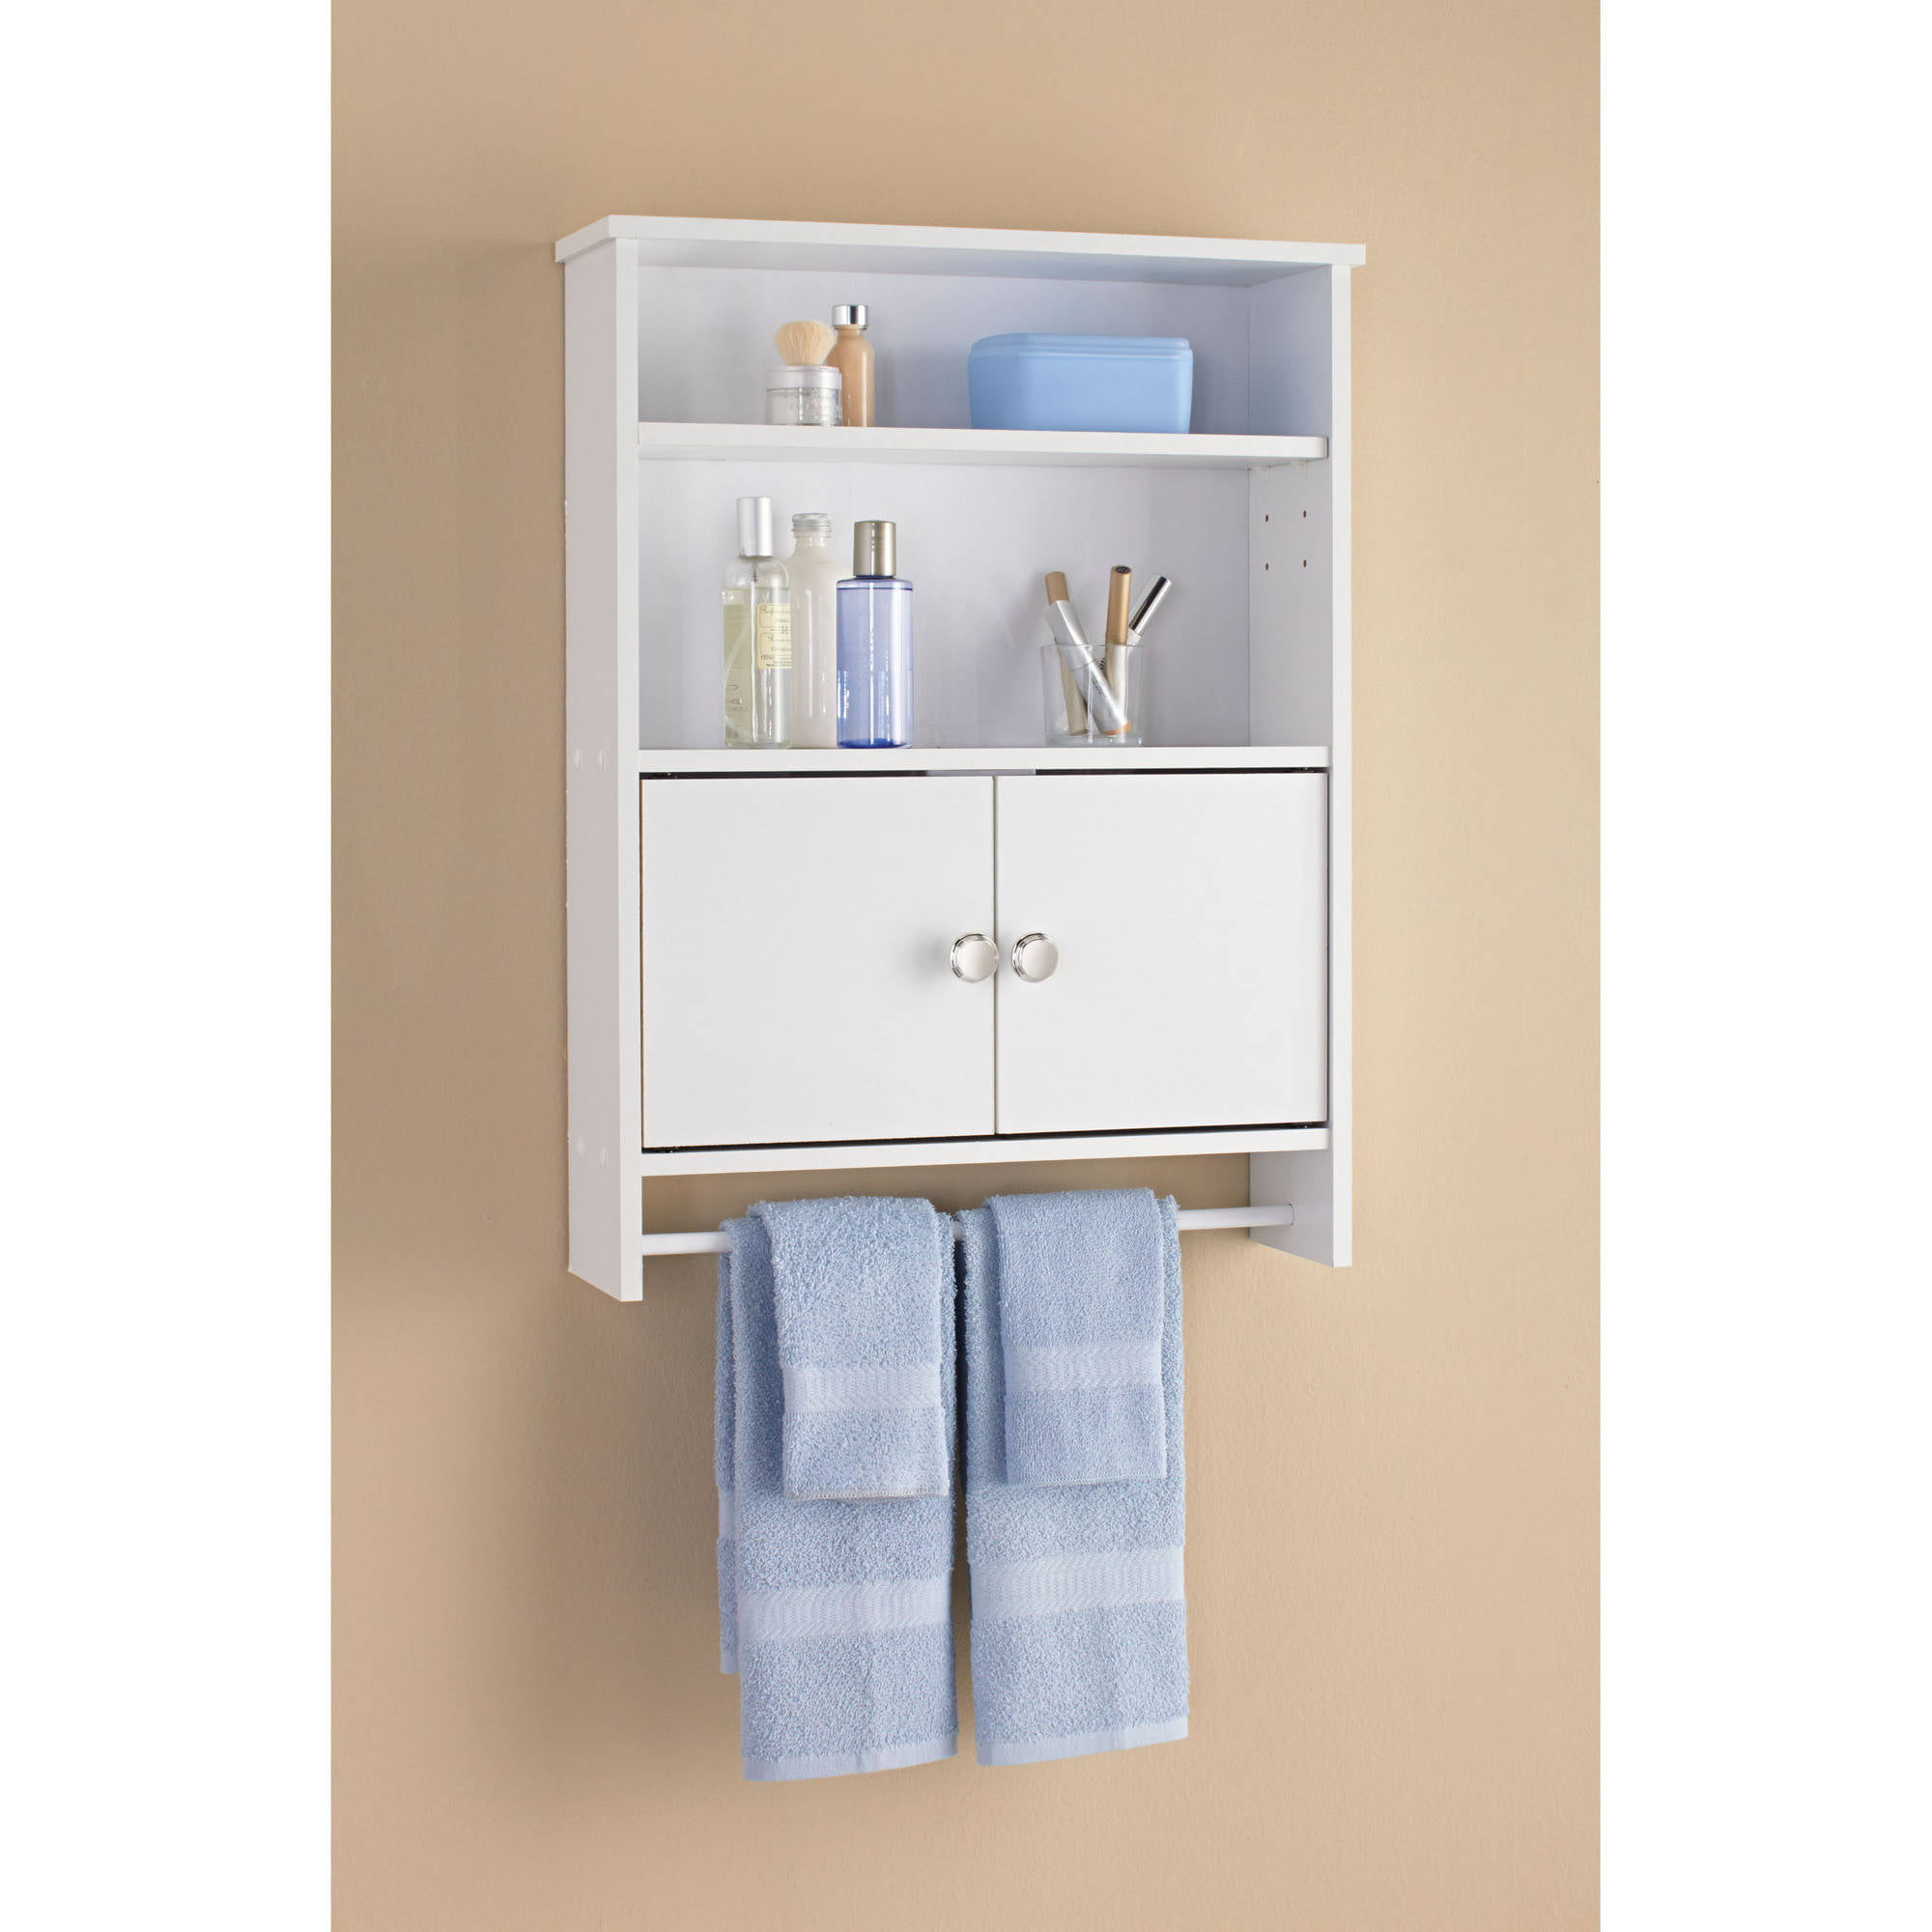 Mainstays 2-Door Bathroom Wall Cabinet, White